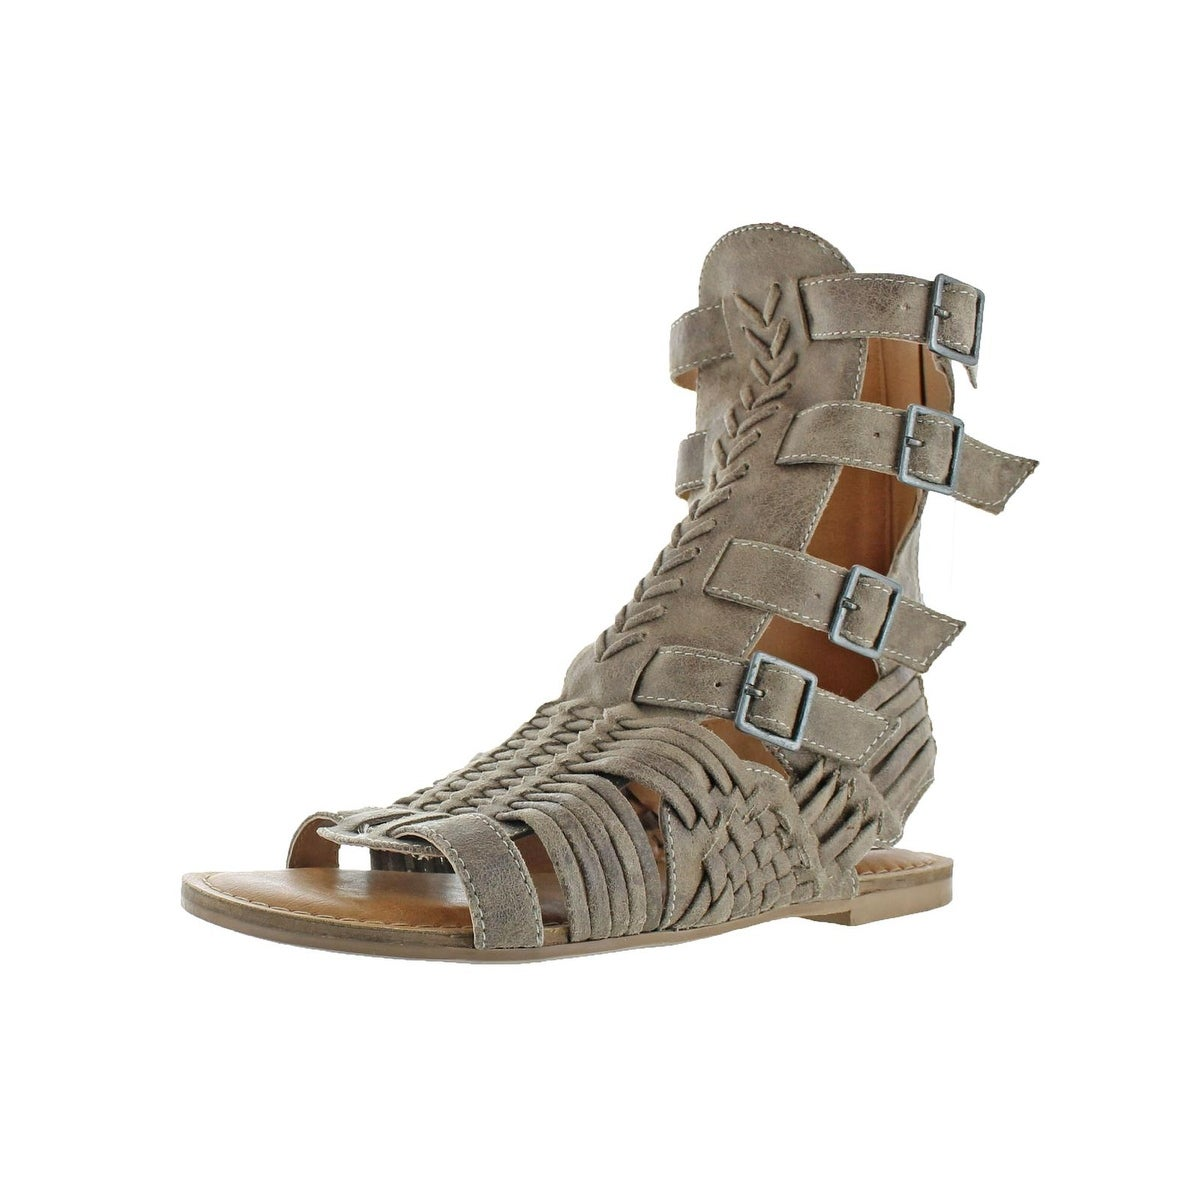 4a980fd986ed Buy Not Rated Women s Sandals Online at Overstock